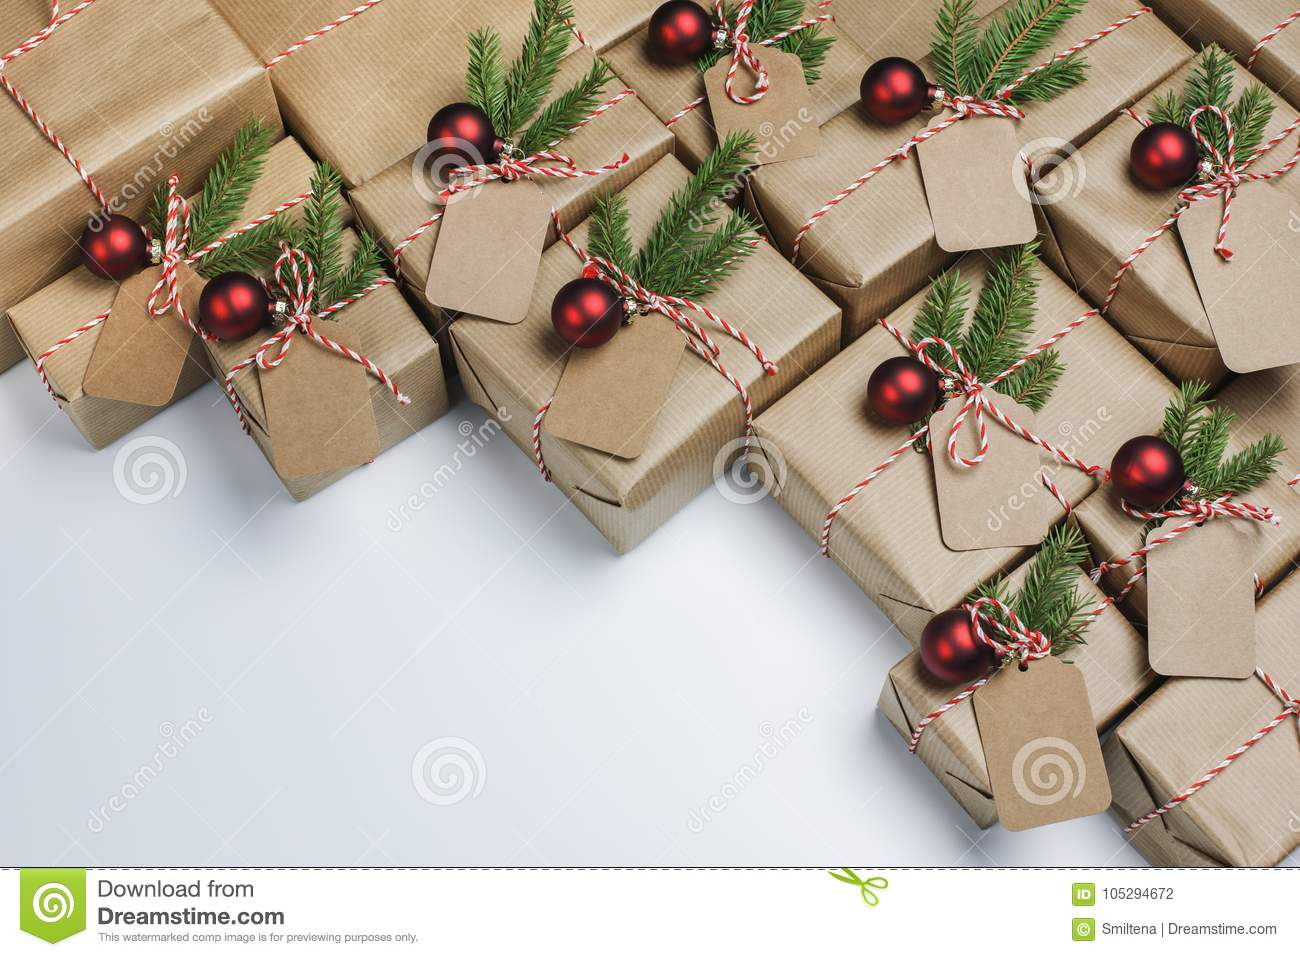 Christmas Gifts Gifts Wrapped In Rustic Paper Stock Photo - Image of ...